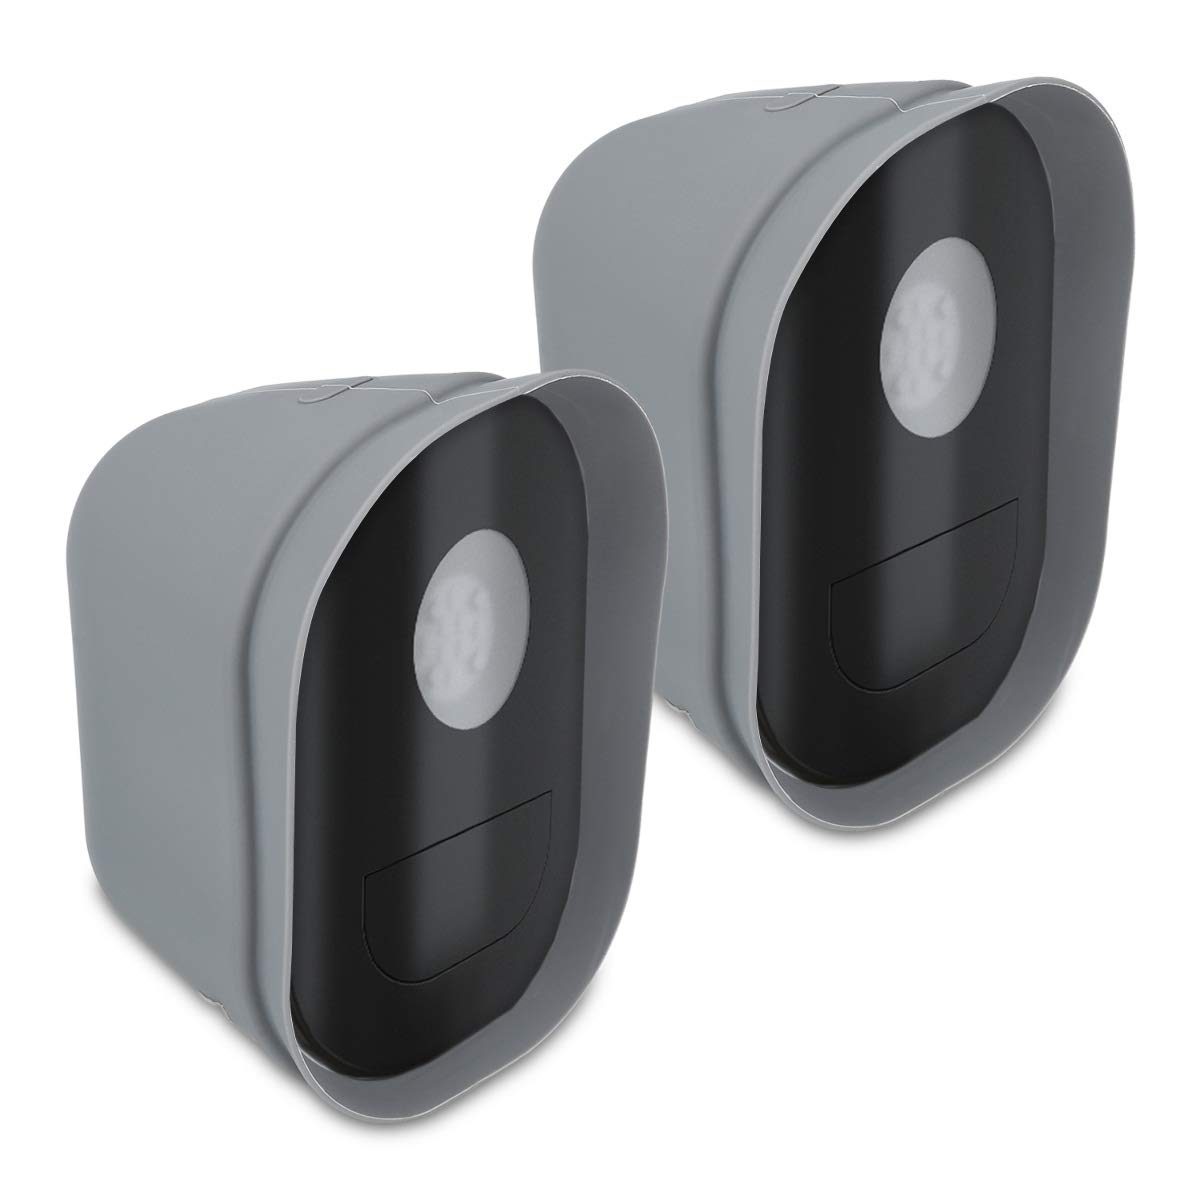 kwmobile 2X Skin for Arlo Security Light - Silicone Security Camera Case Outdoor CCTV Protective Cover - Grey by kwmobile